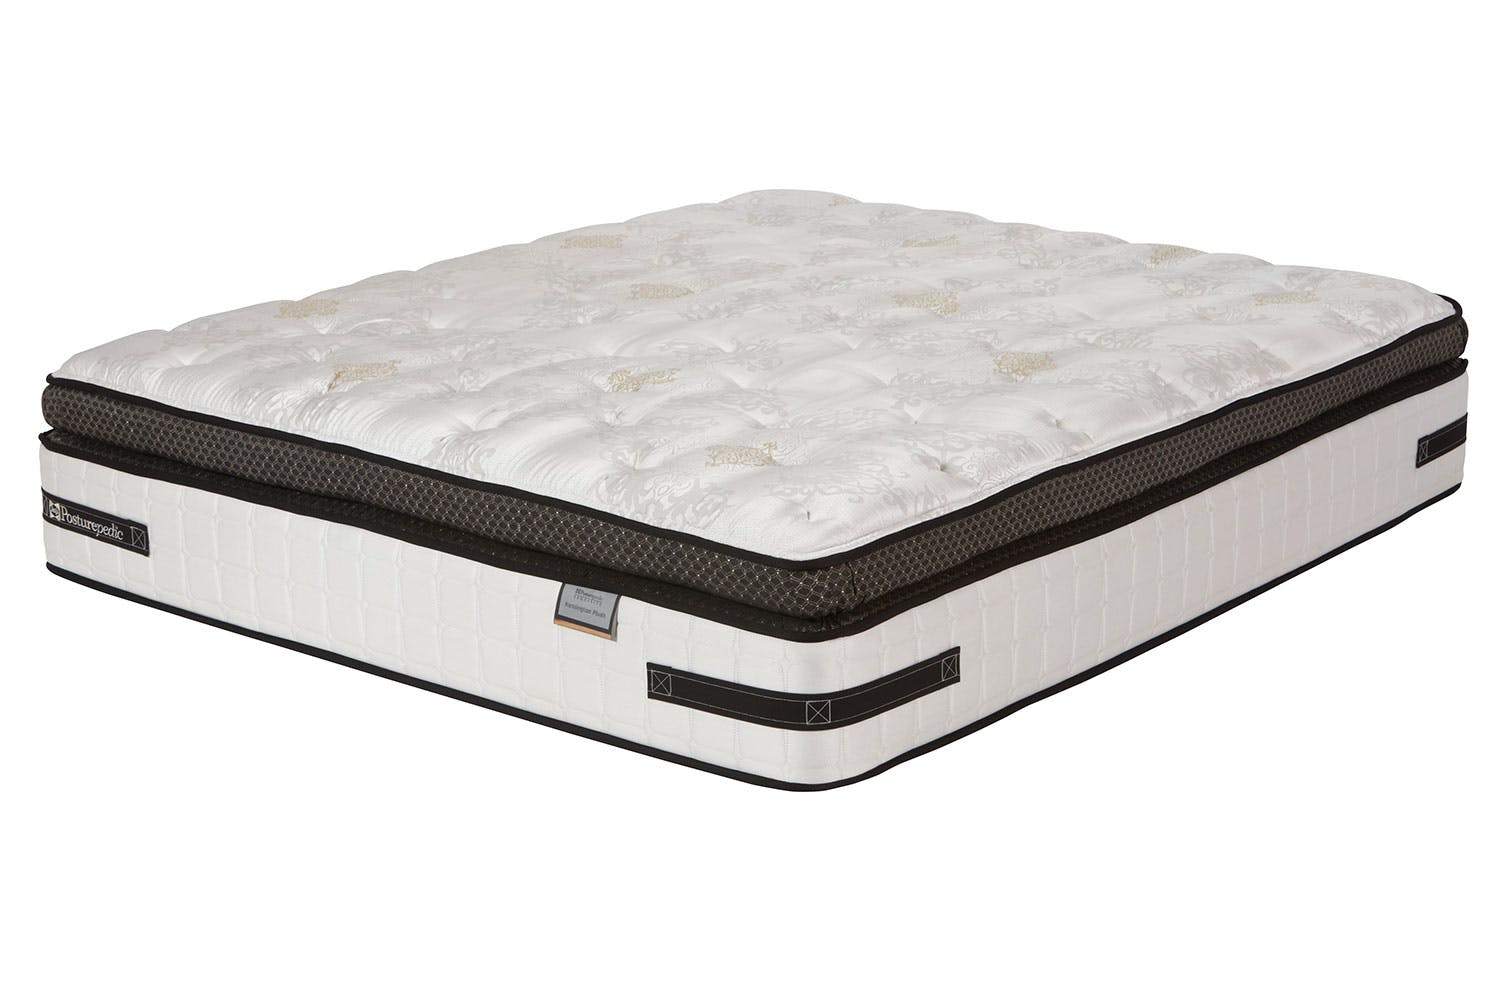 Kensington Plush King Mattress By Sealy Posturepedic Harvey Norman New Zealand